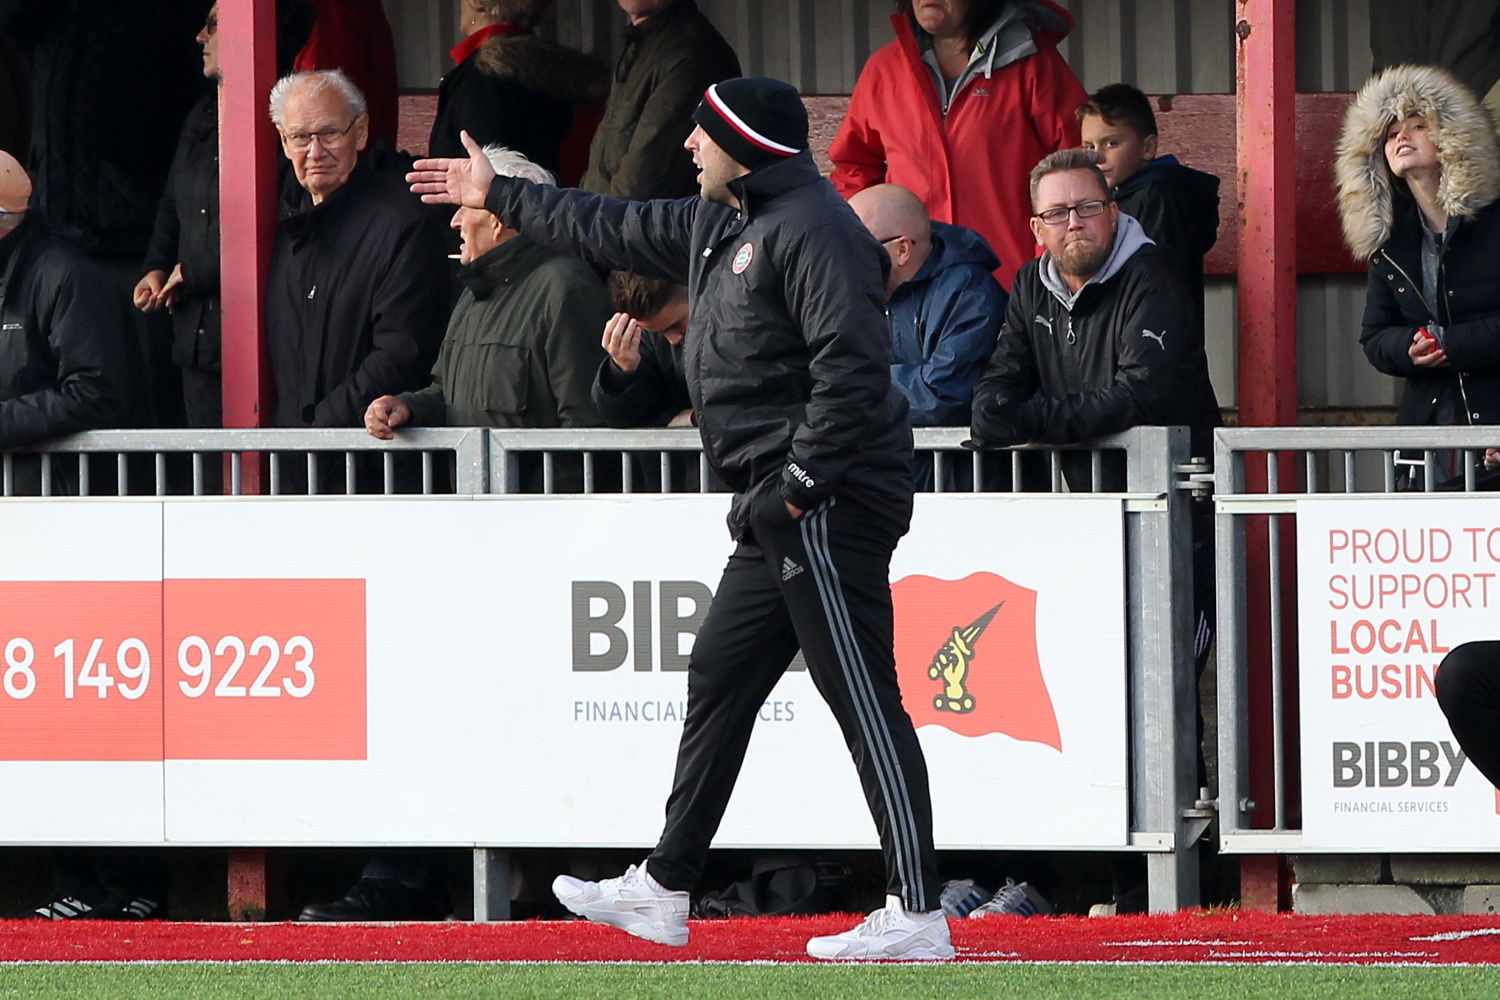 Read the full article - Match Preview: Hinshelwood expects tight match at Lewes